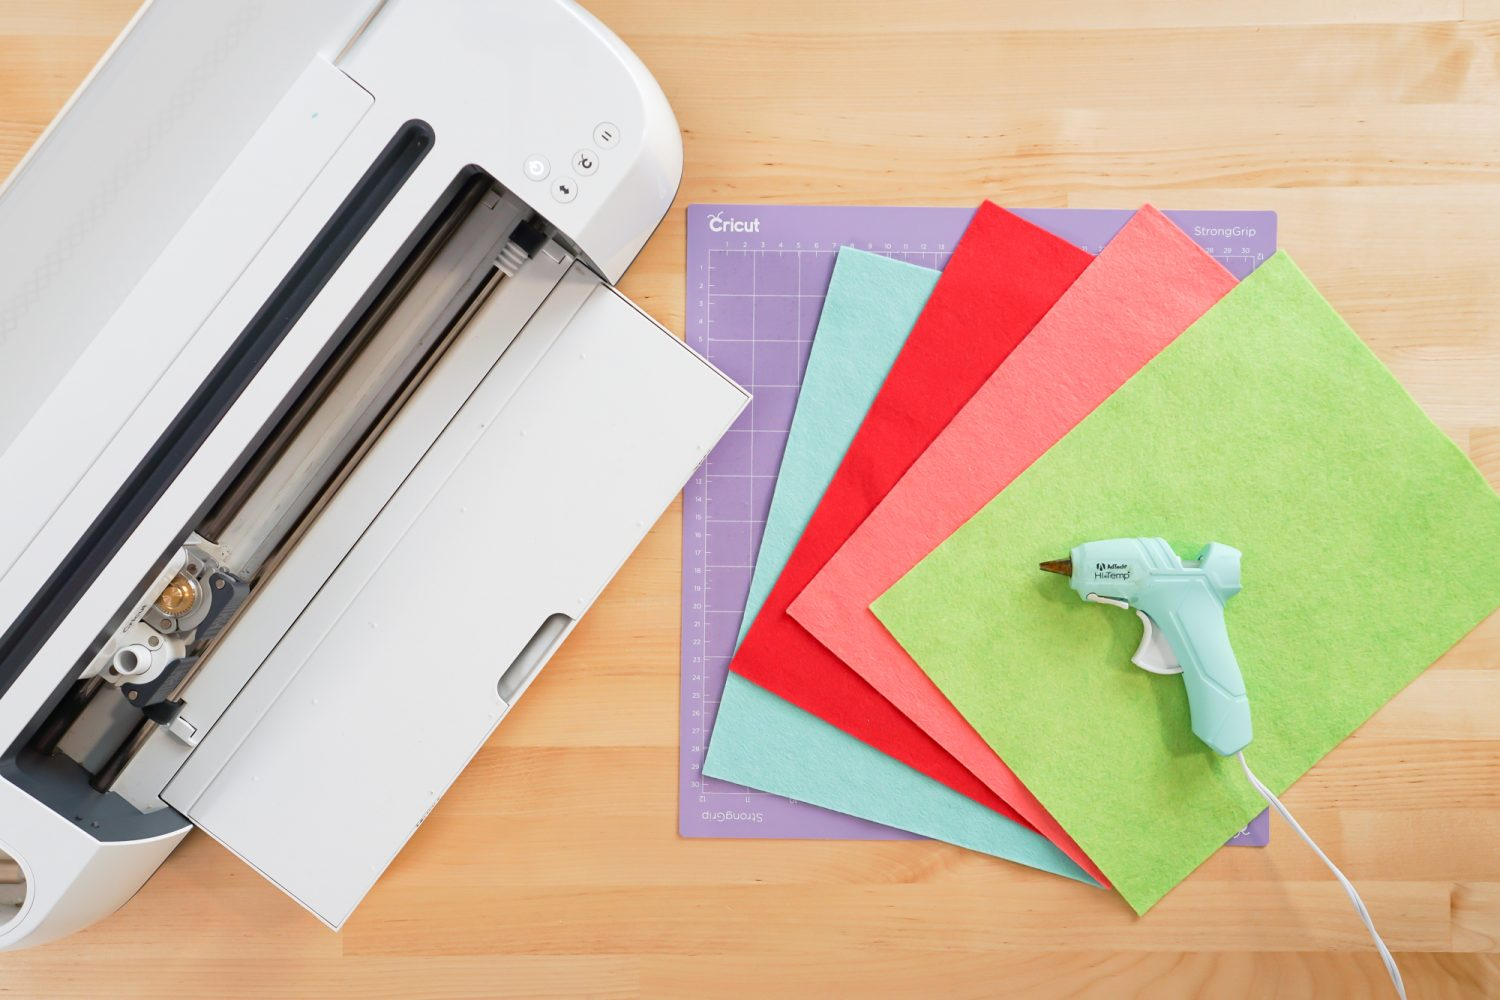 Supplies needed for this project: Cricut Maker, Cricut mat, felt, glue gun